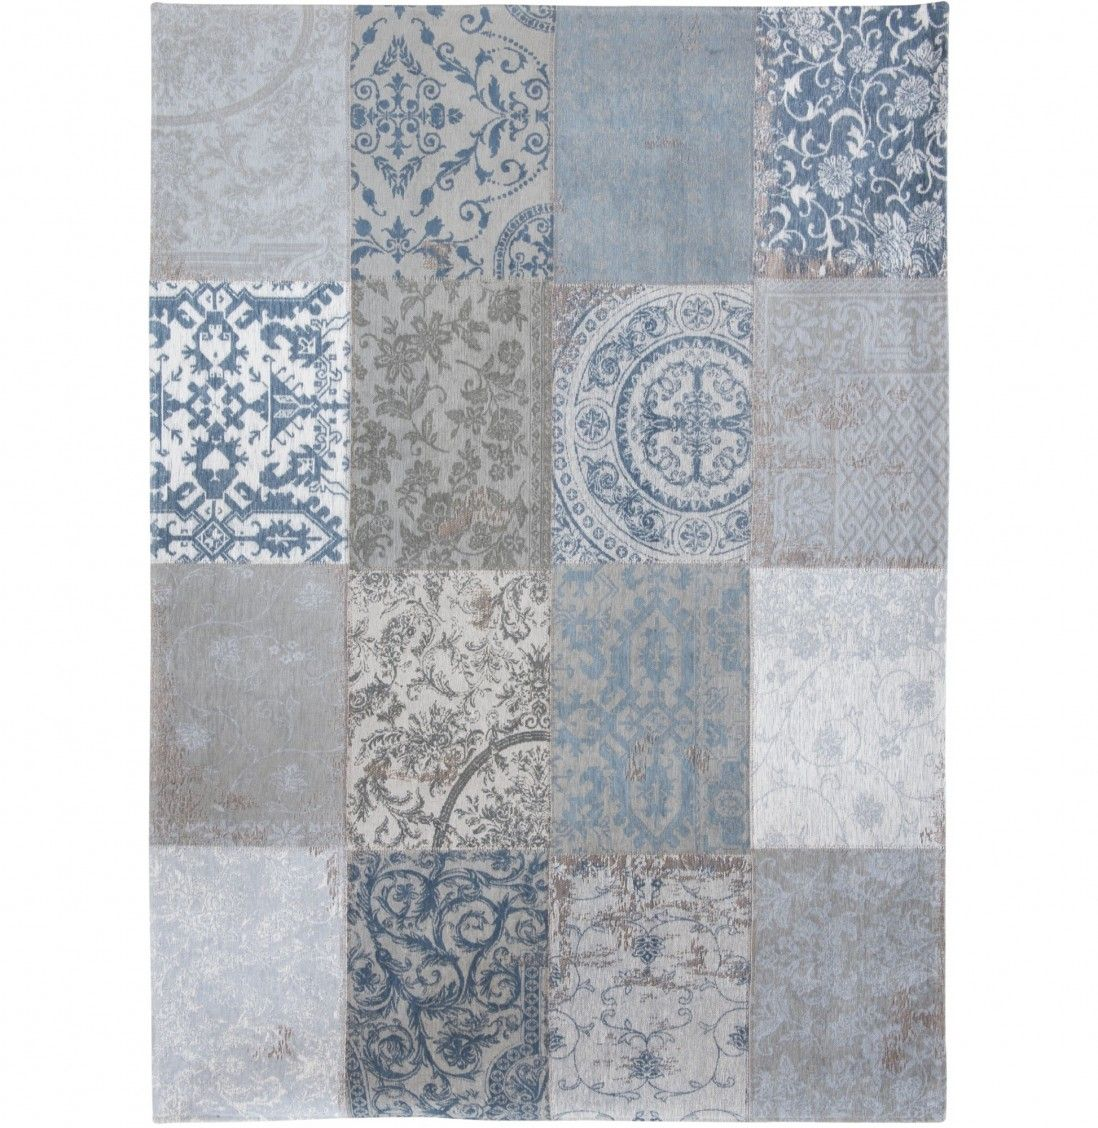 PATCHWORK CHENILLE 8981 AREA RUG